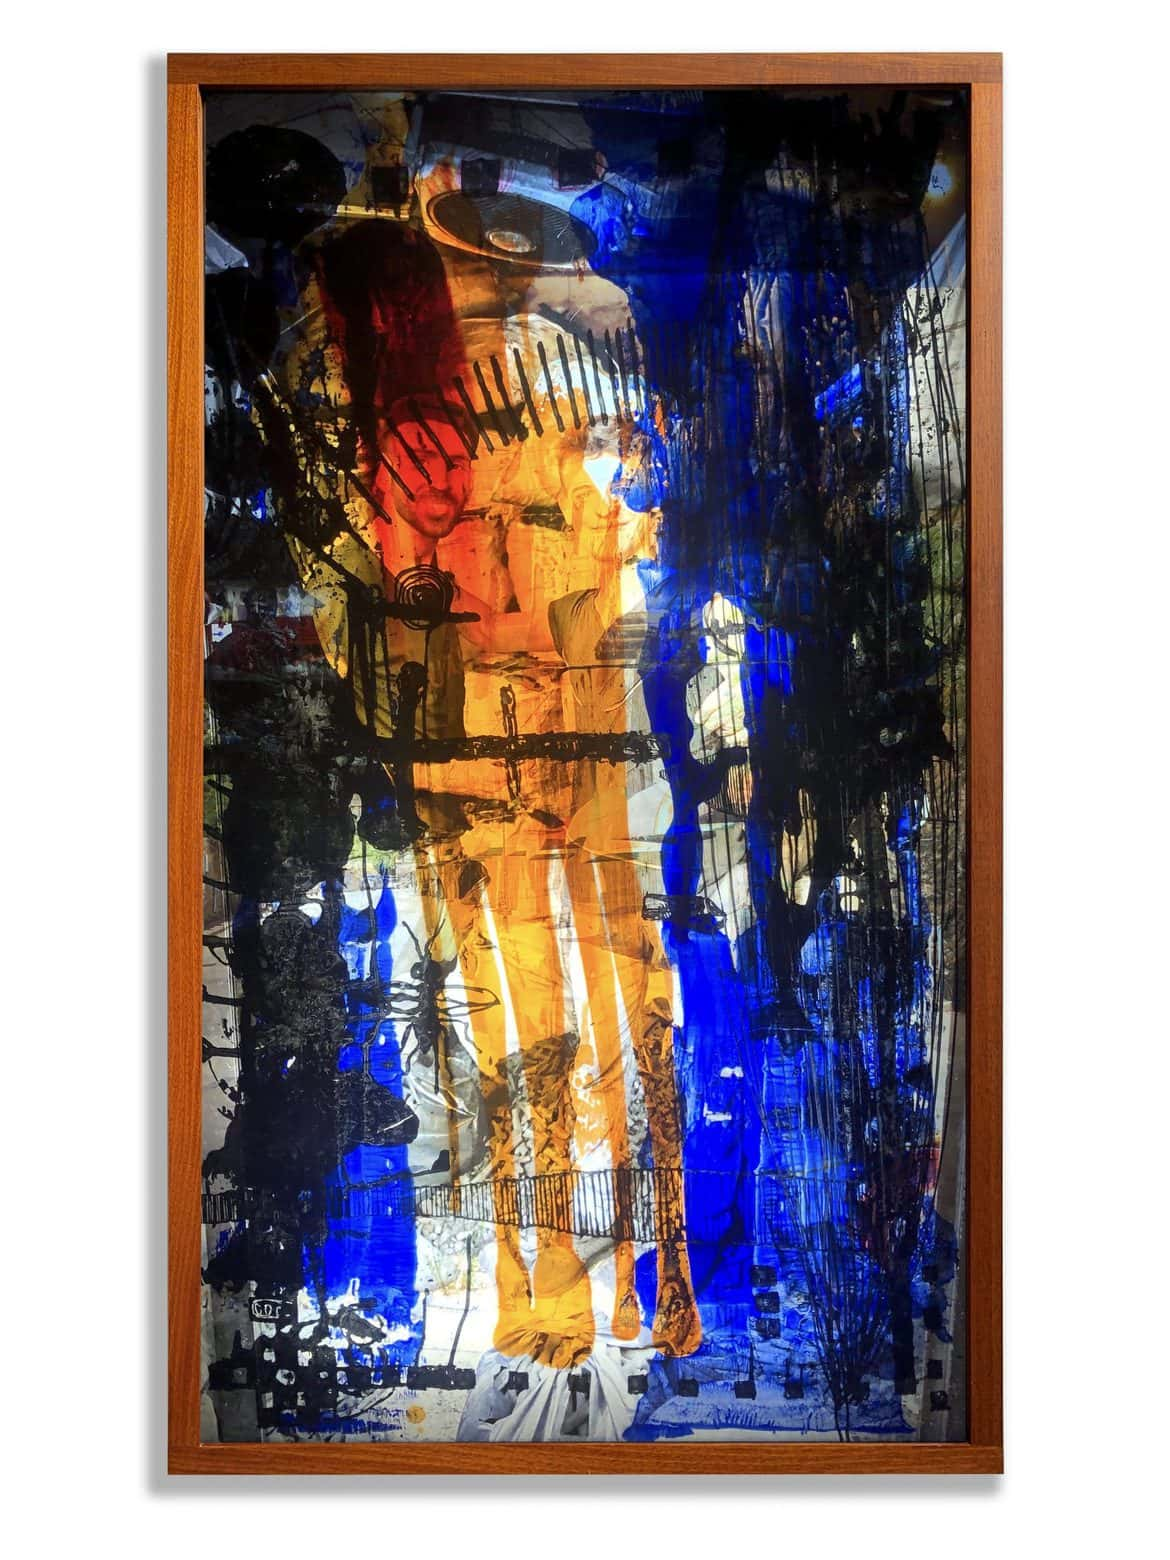 'Corona Jihad', 2020, mixed media on translucent film with face-mounted photographic image on acrylic in framed light box,140 x 80 x 11 cm